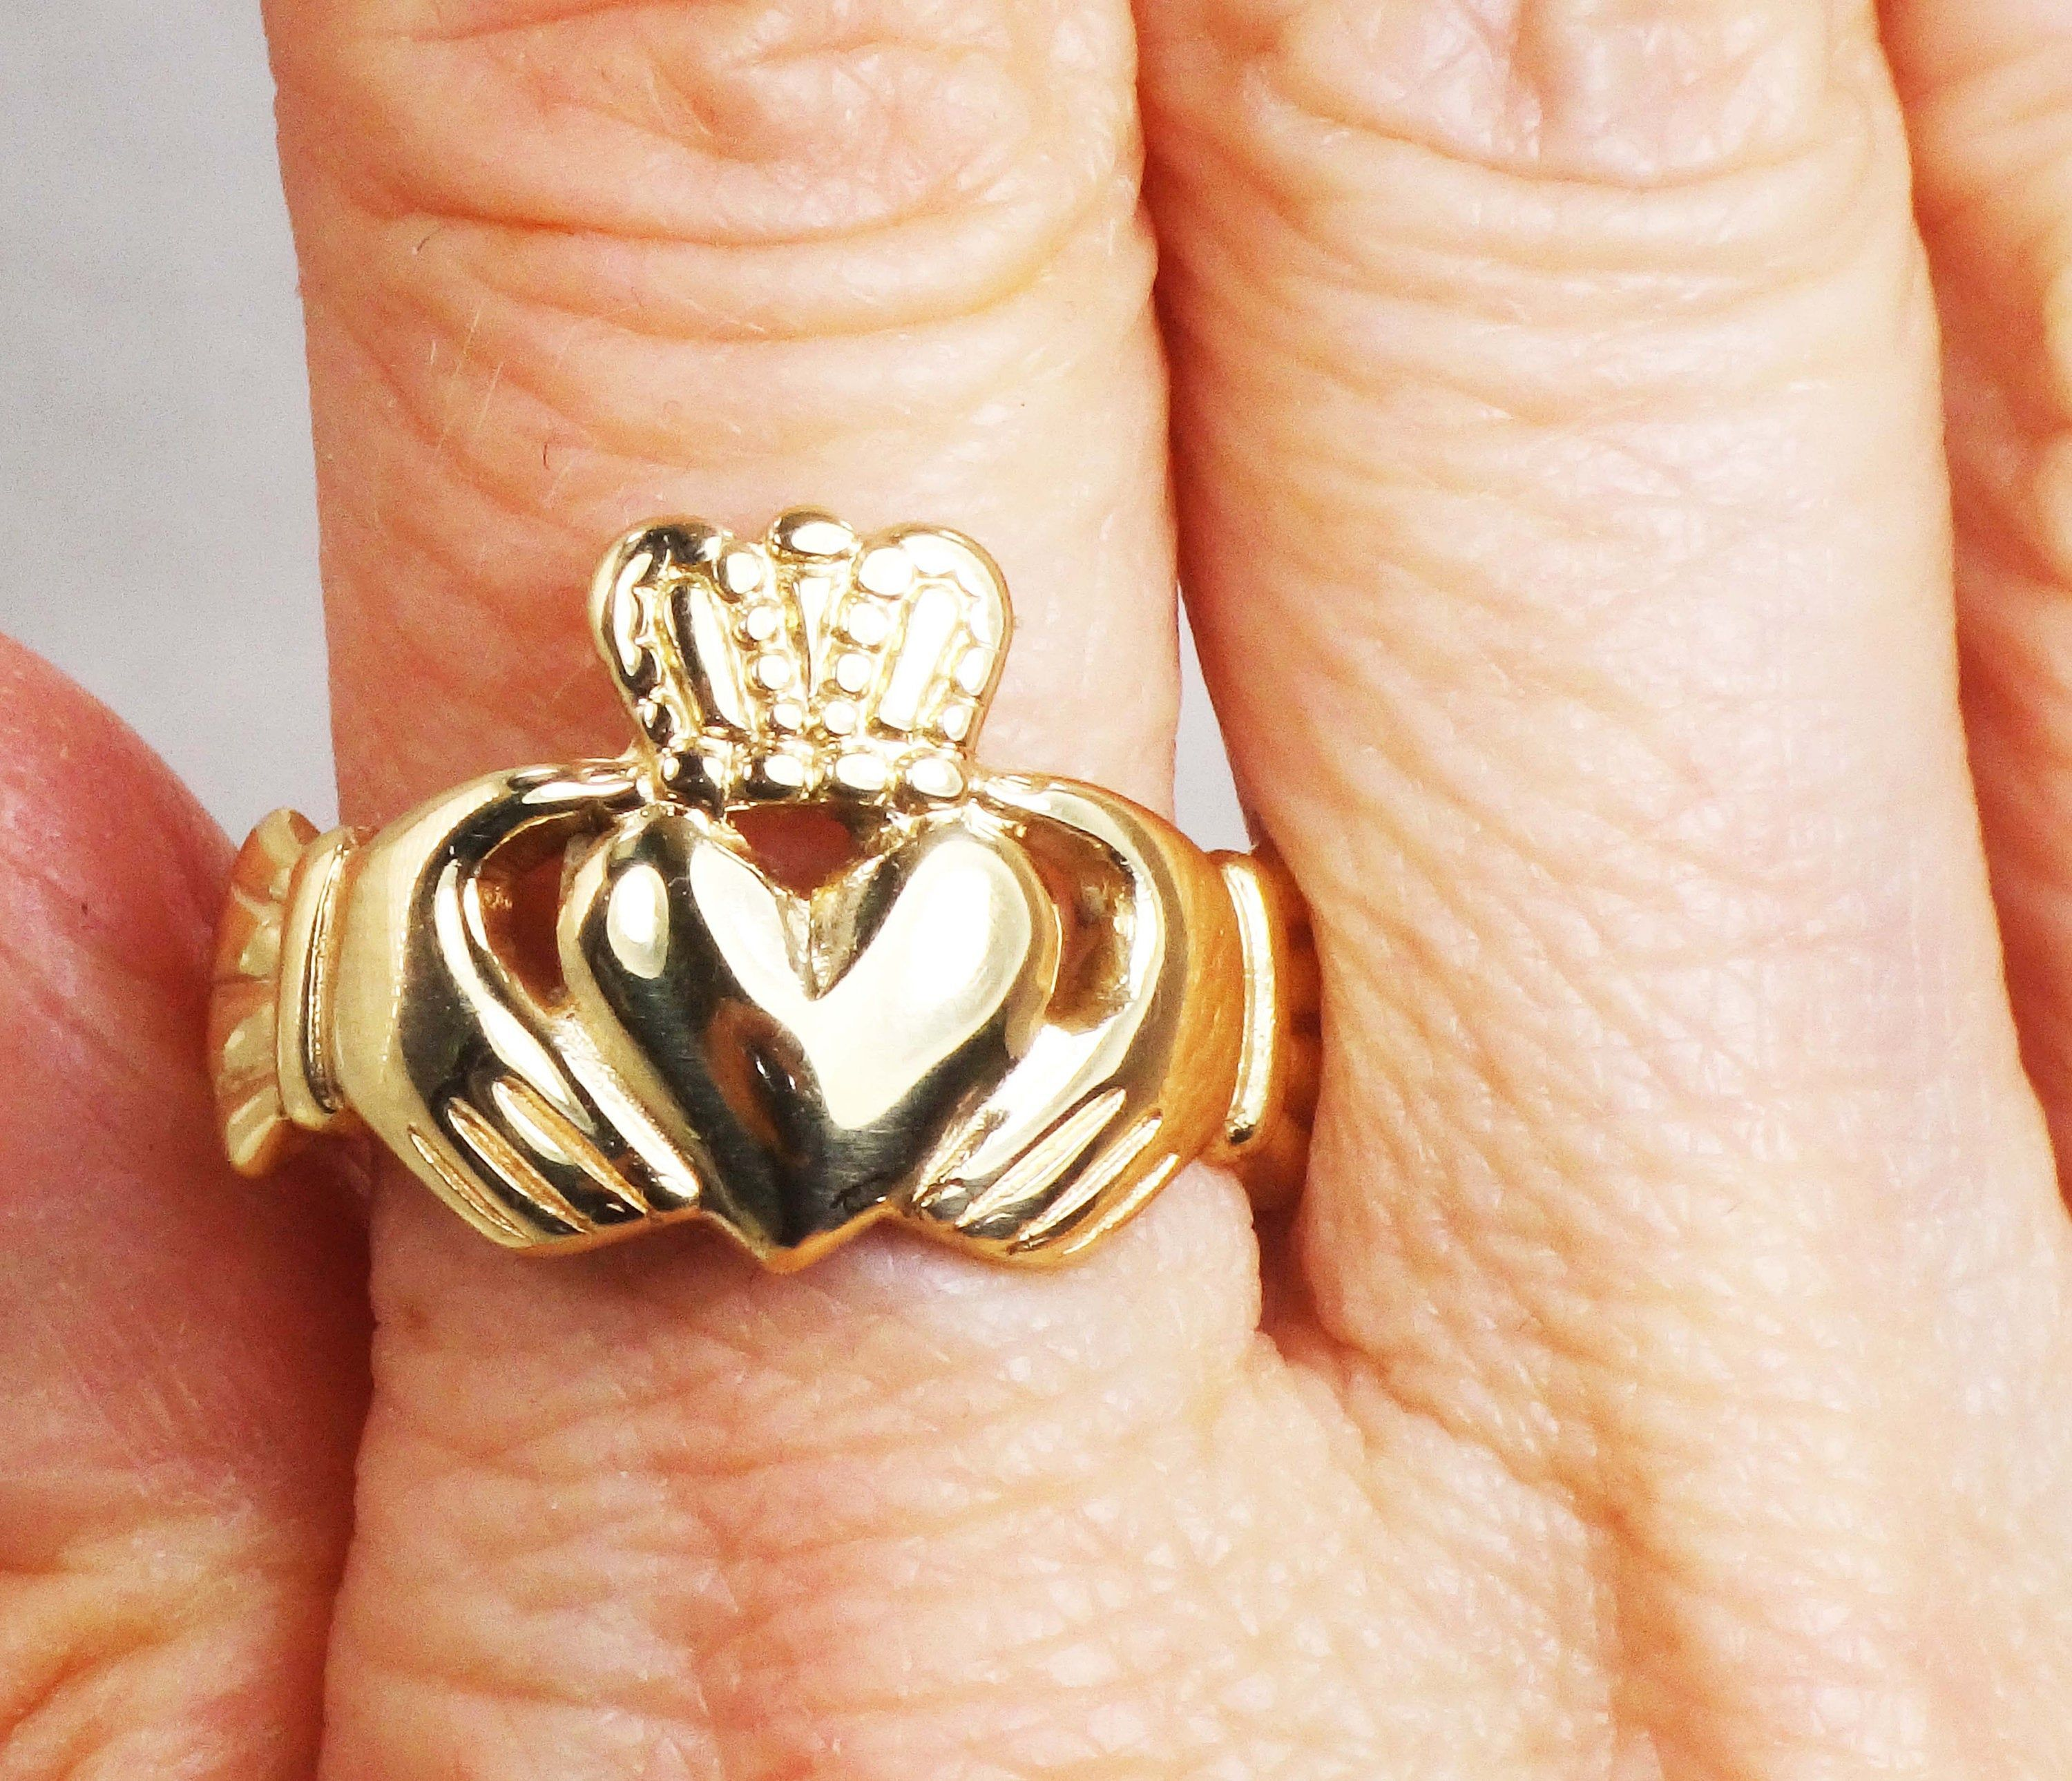 Vintage 9k Gold Claddagh Ring Gold Ring Made In Ireland Gold Claddagh Ring Claddagh Rings Claddagh